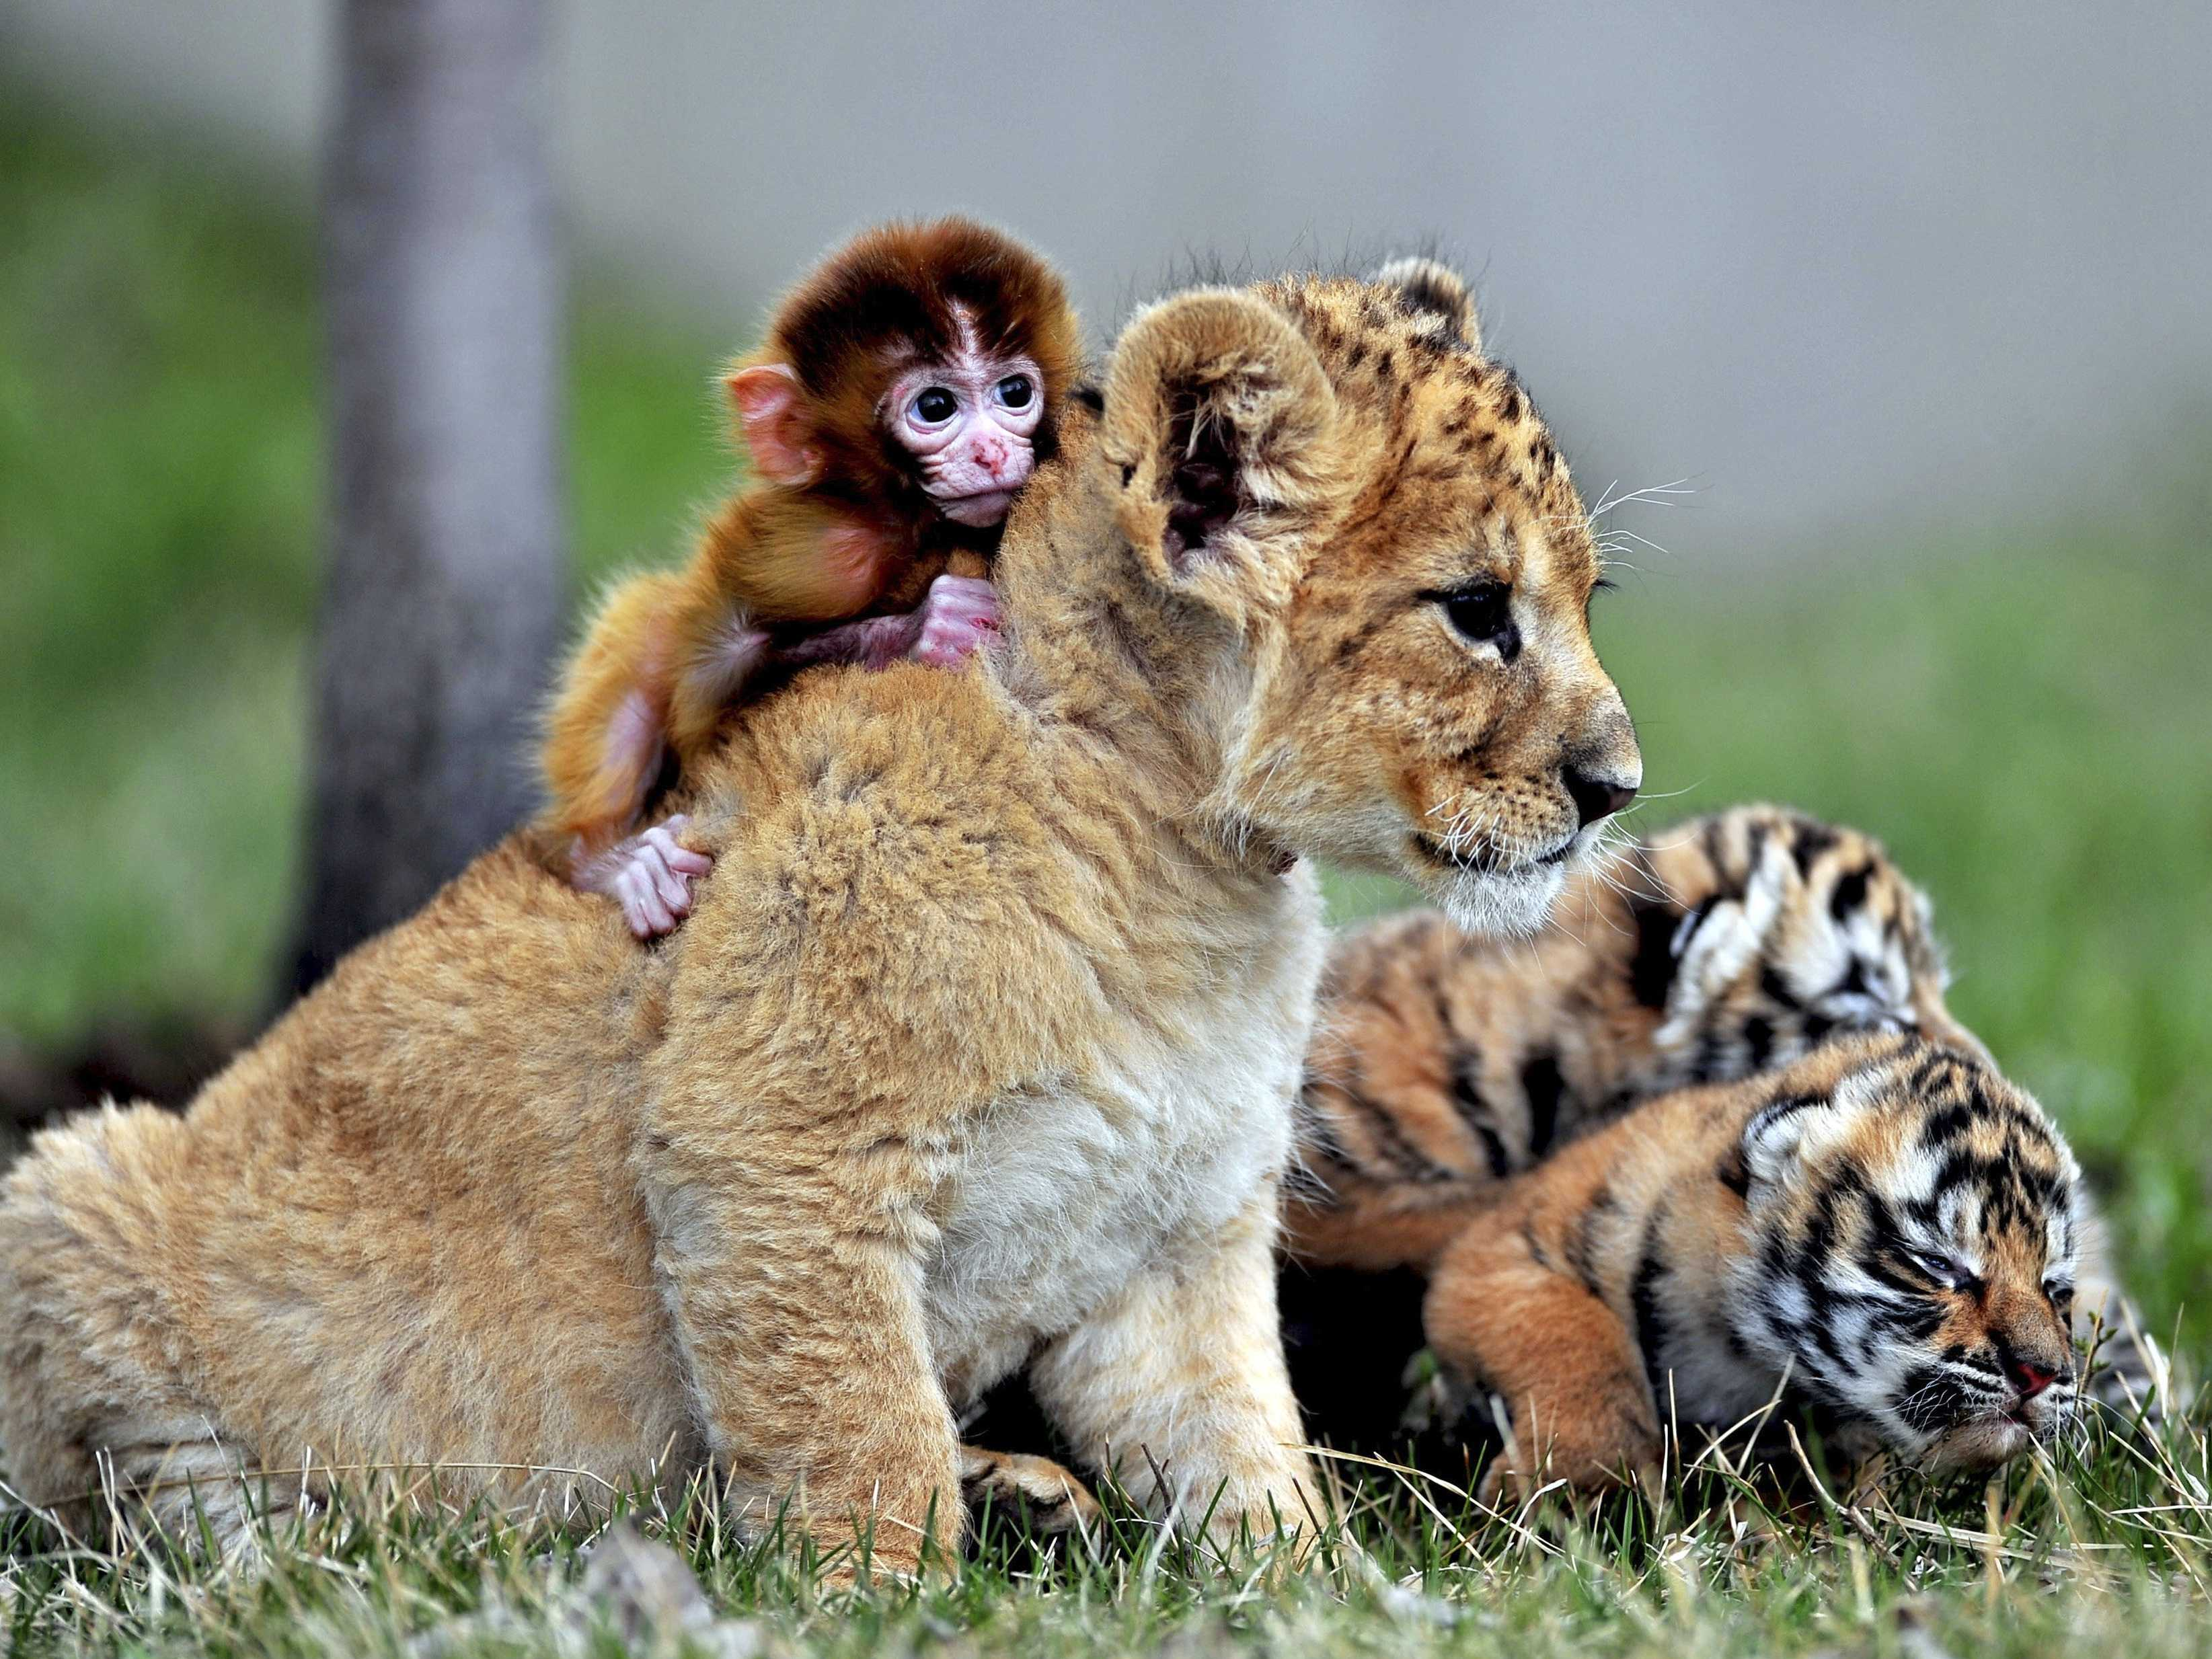 Monkey, Lion and Tigers Baby Animals 71.47 Kb